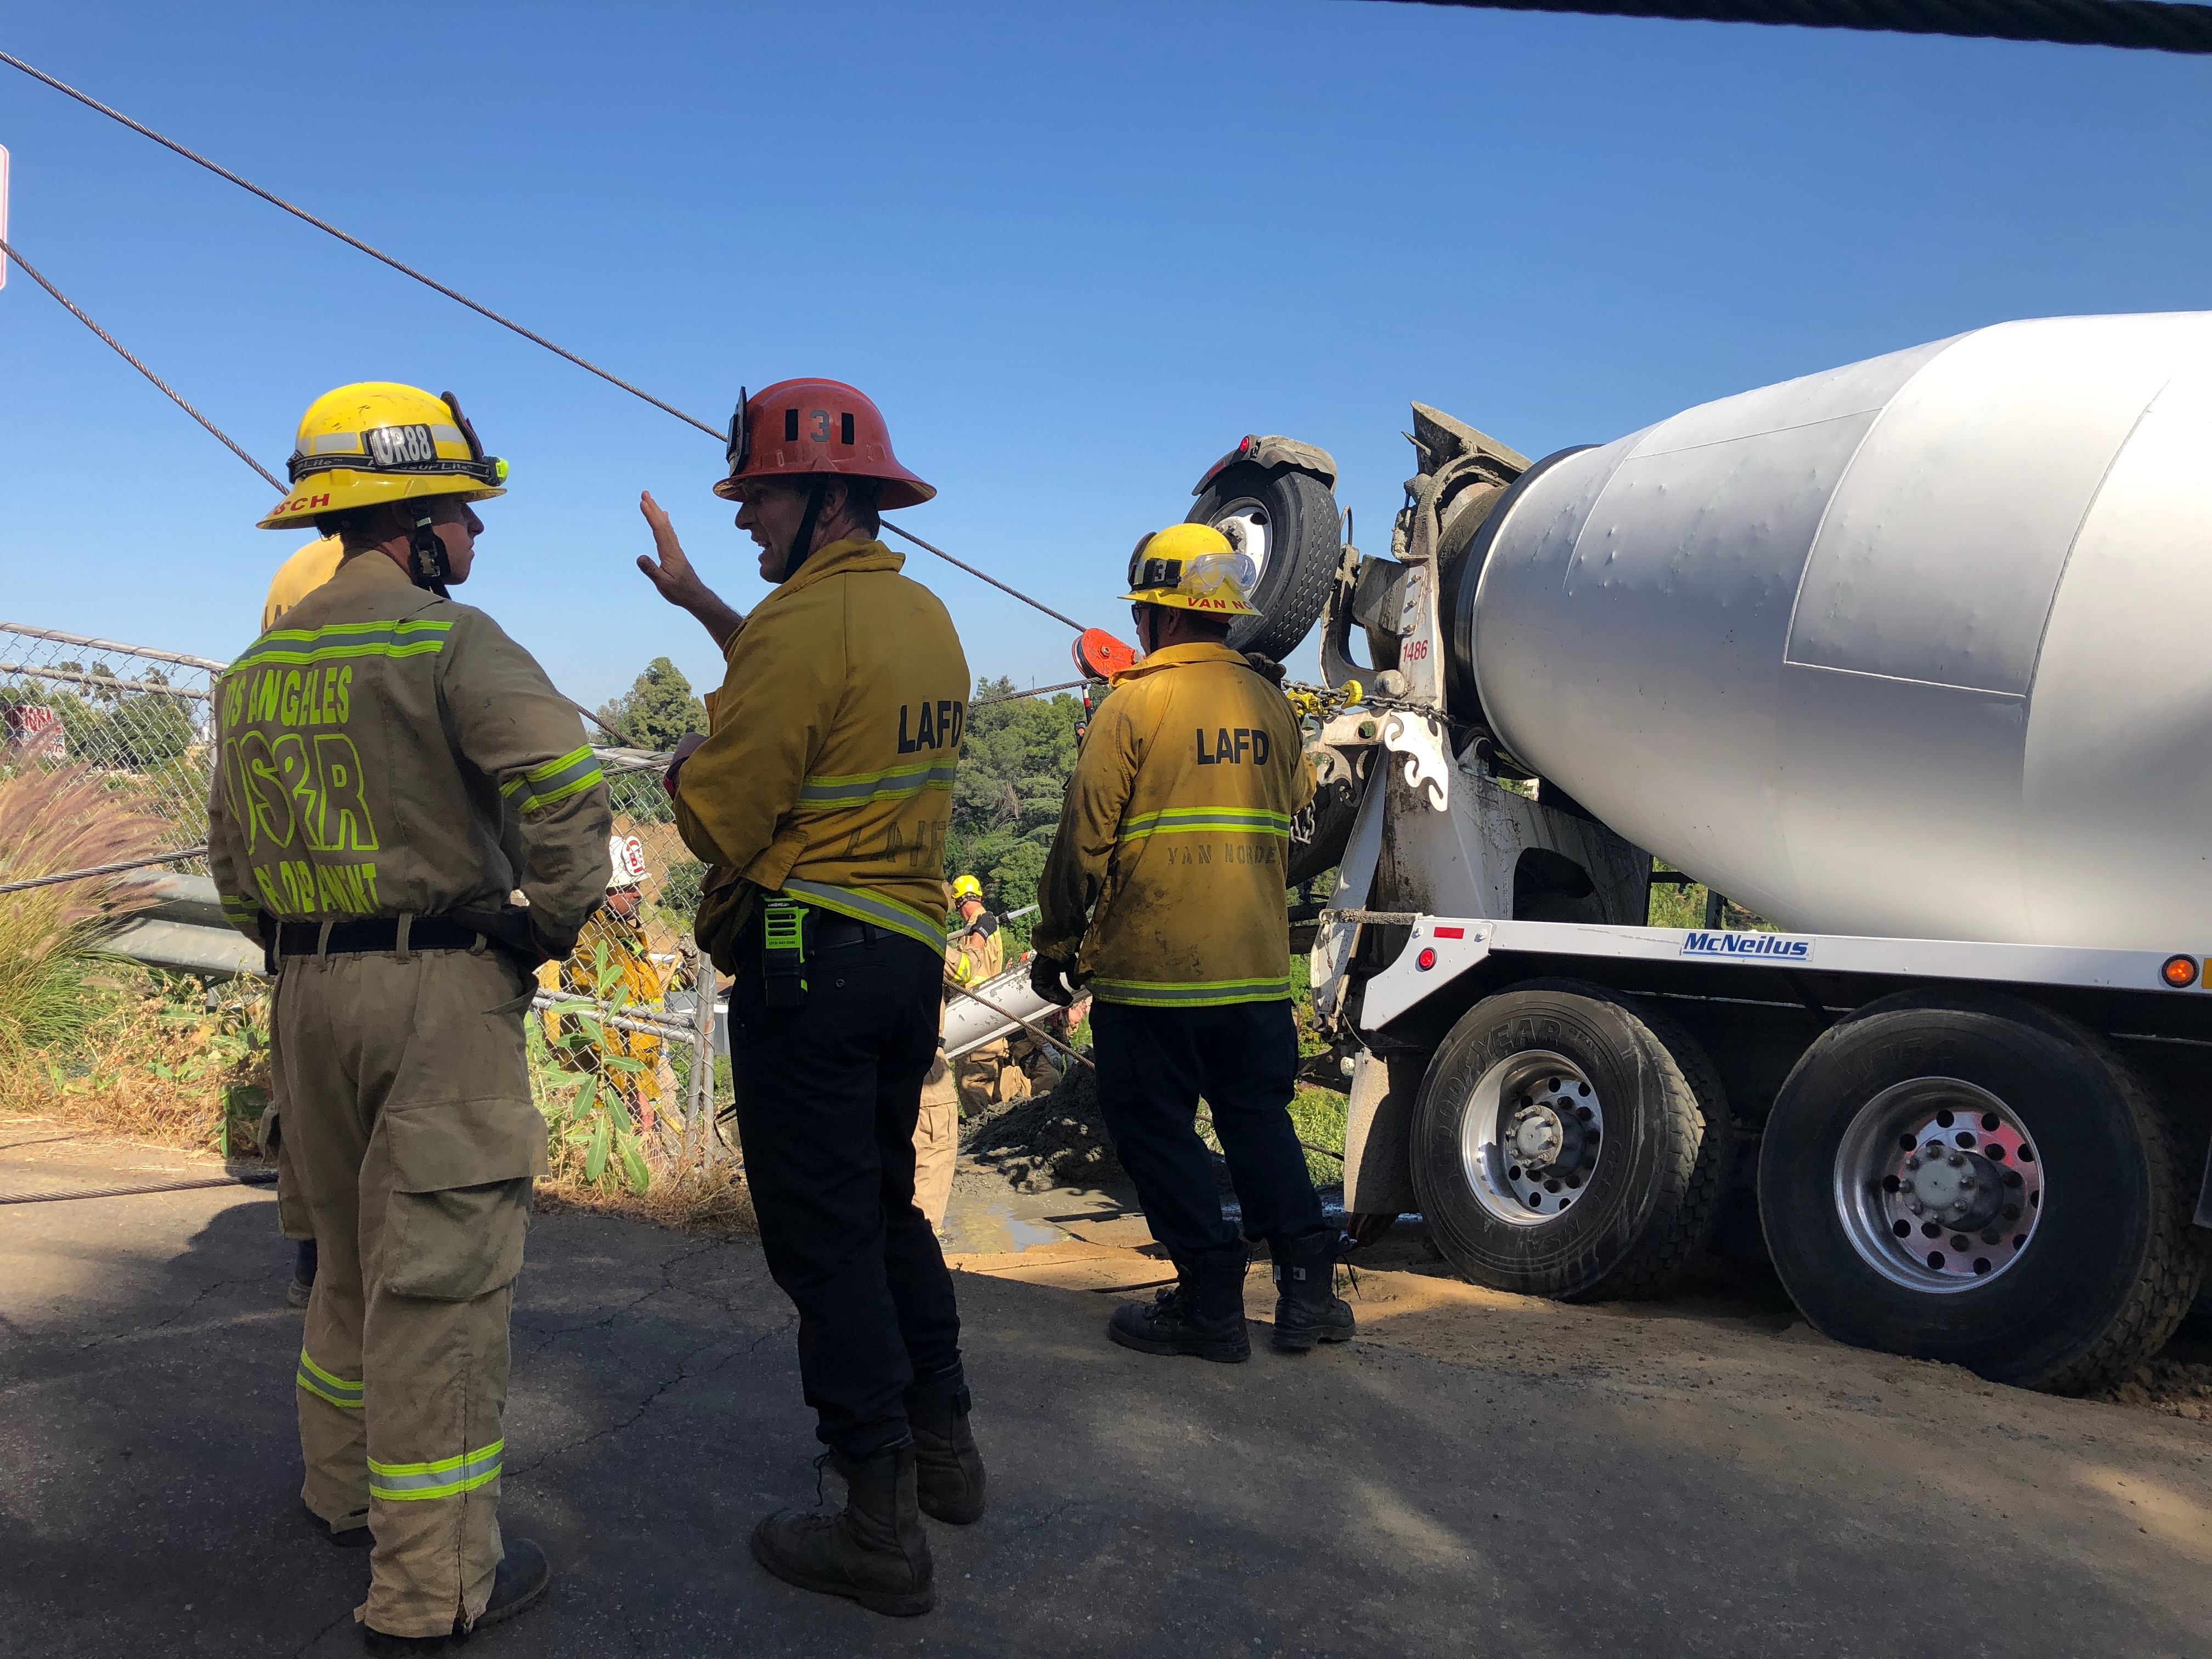 Rigging shown leading to the mixer truck with firefighters in the foreground